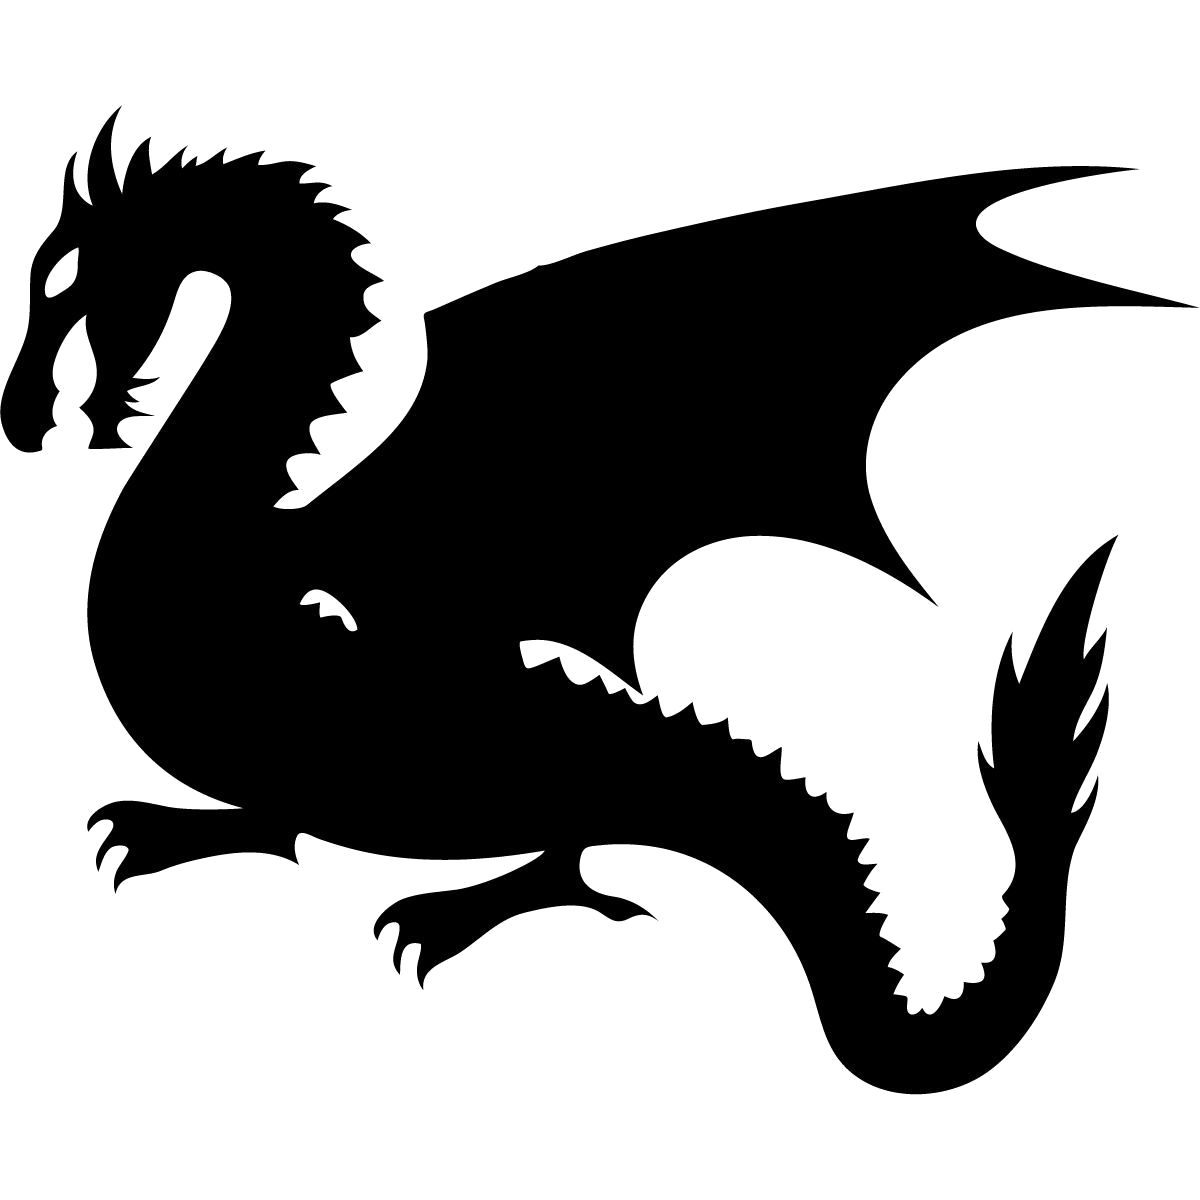 Game of thrones dragon clipart black and white vector black and white stock Game Of Thrones Dragon Clipart Transparent Png 2 - AZPng vector black and white stock